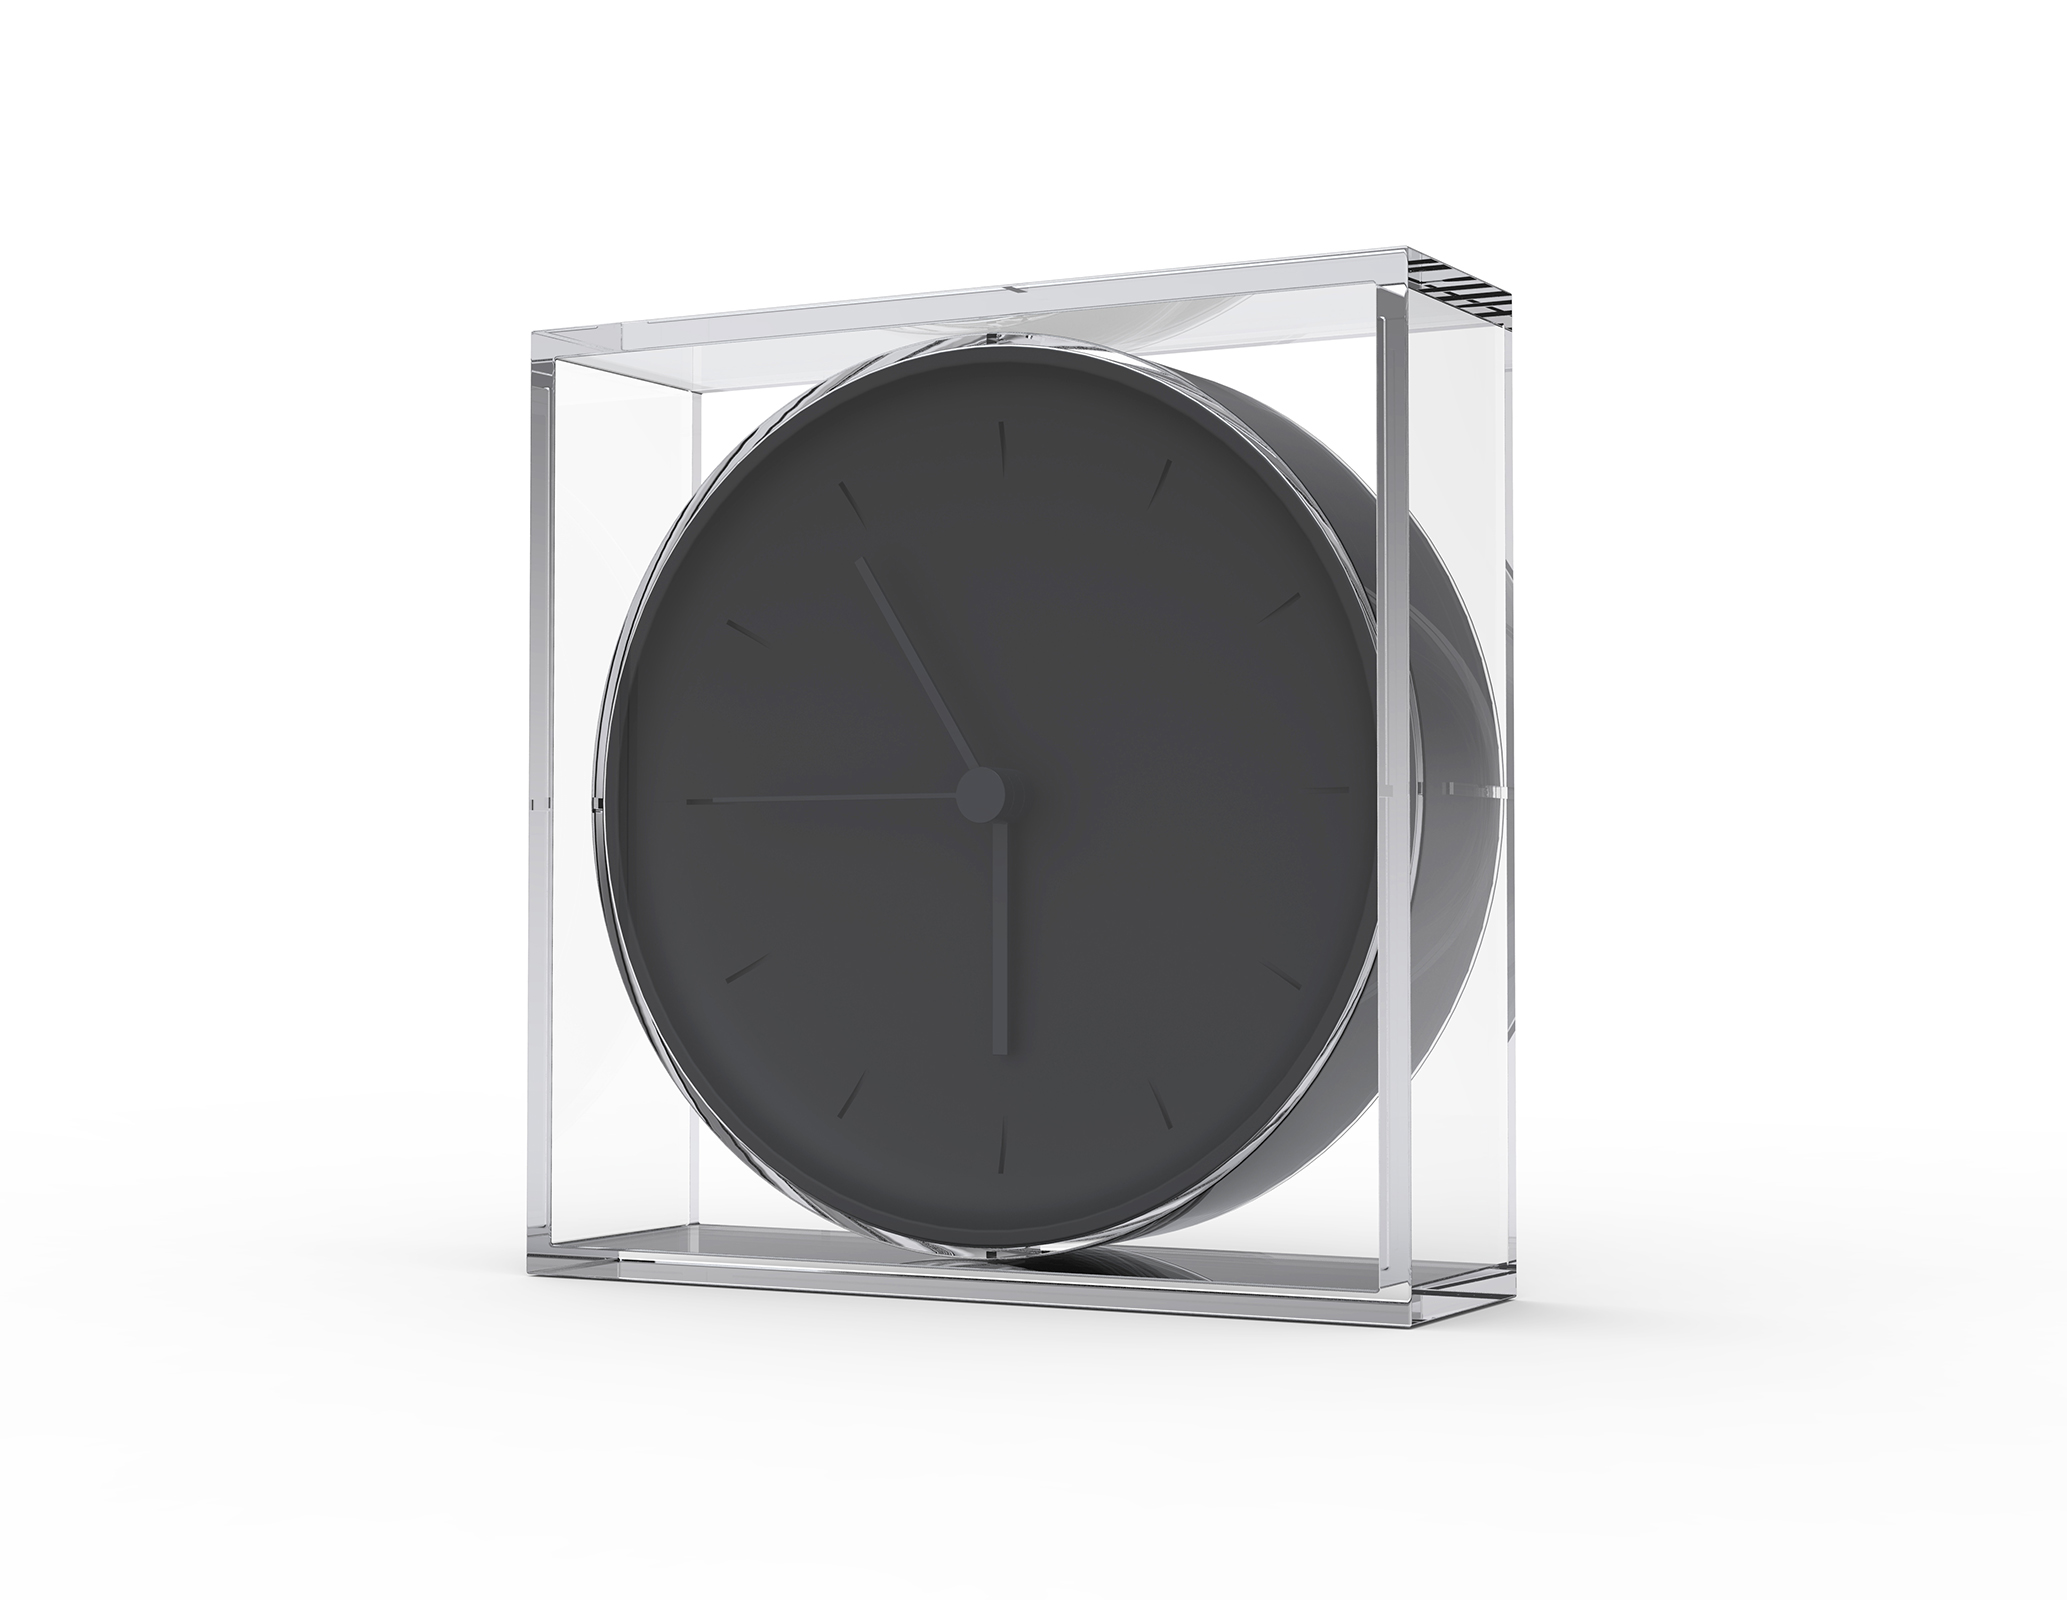 2015-12-10 LEXON VOID TIME packaging renders.2473b